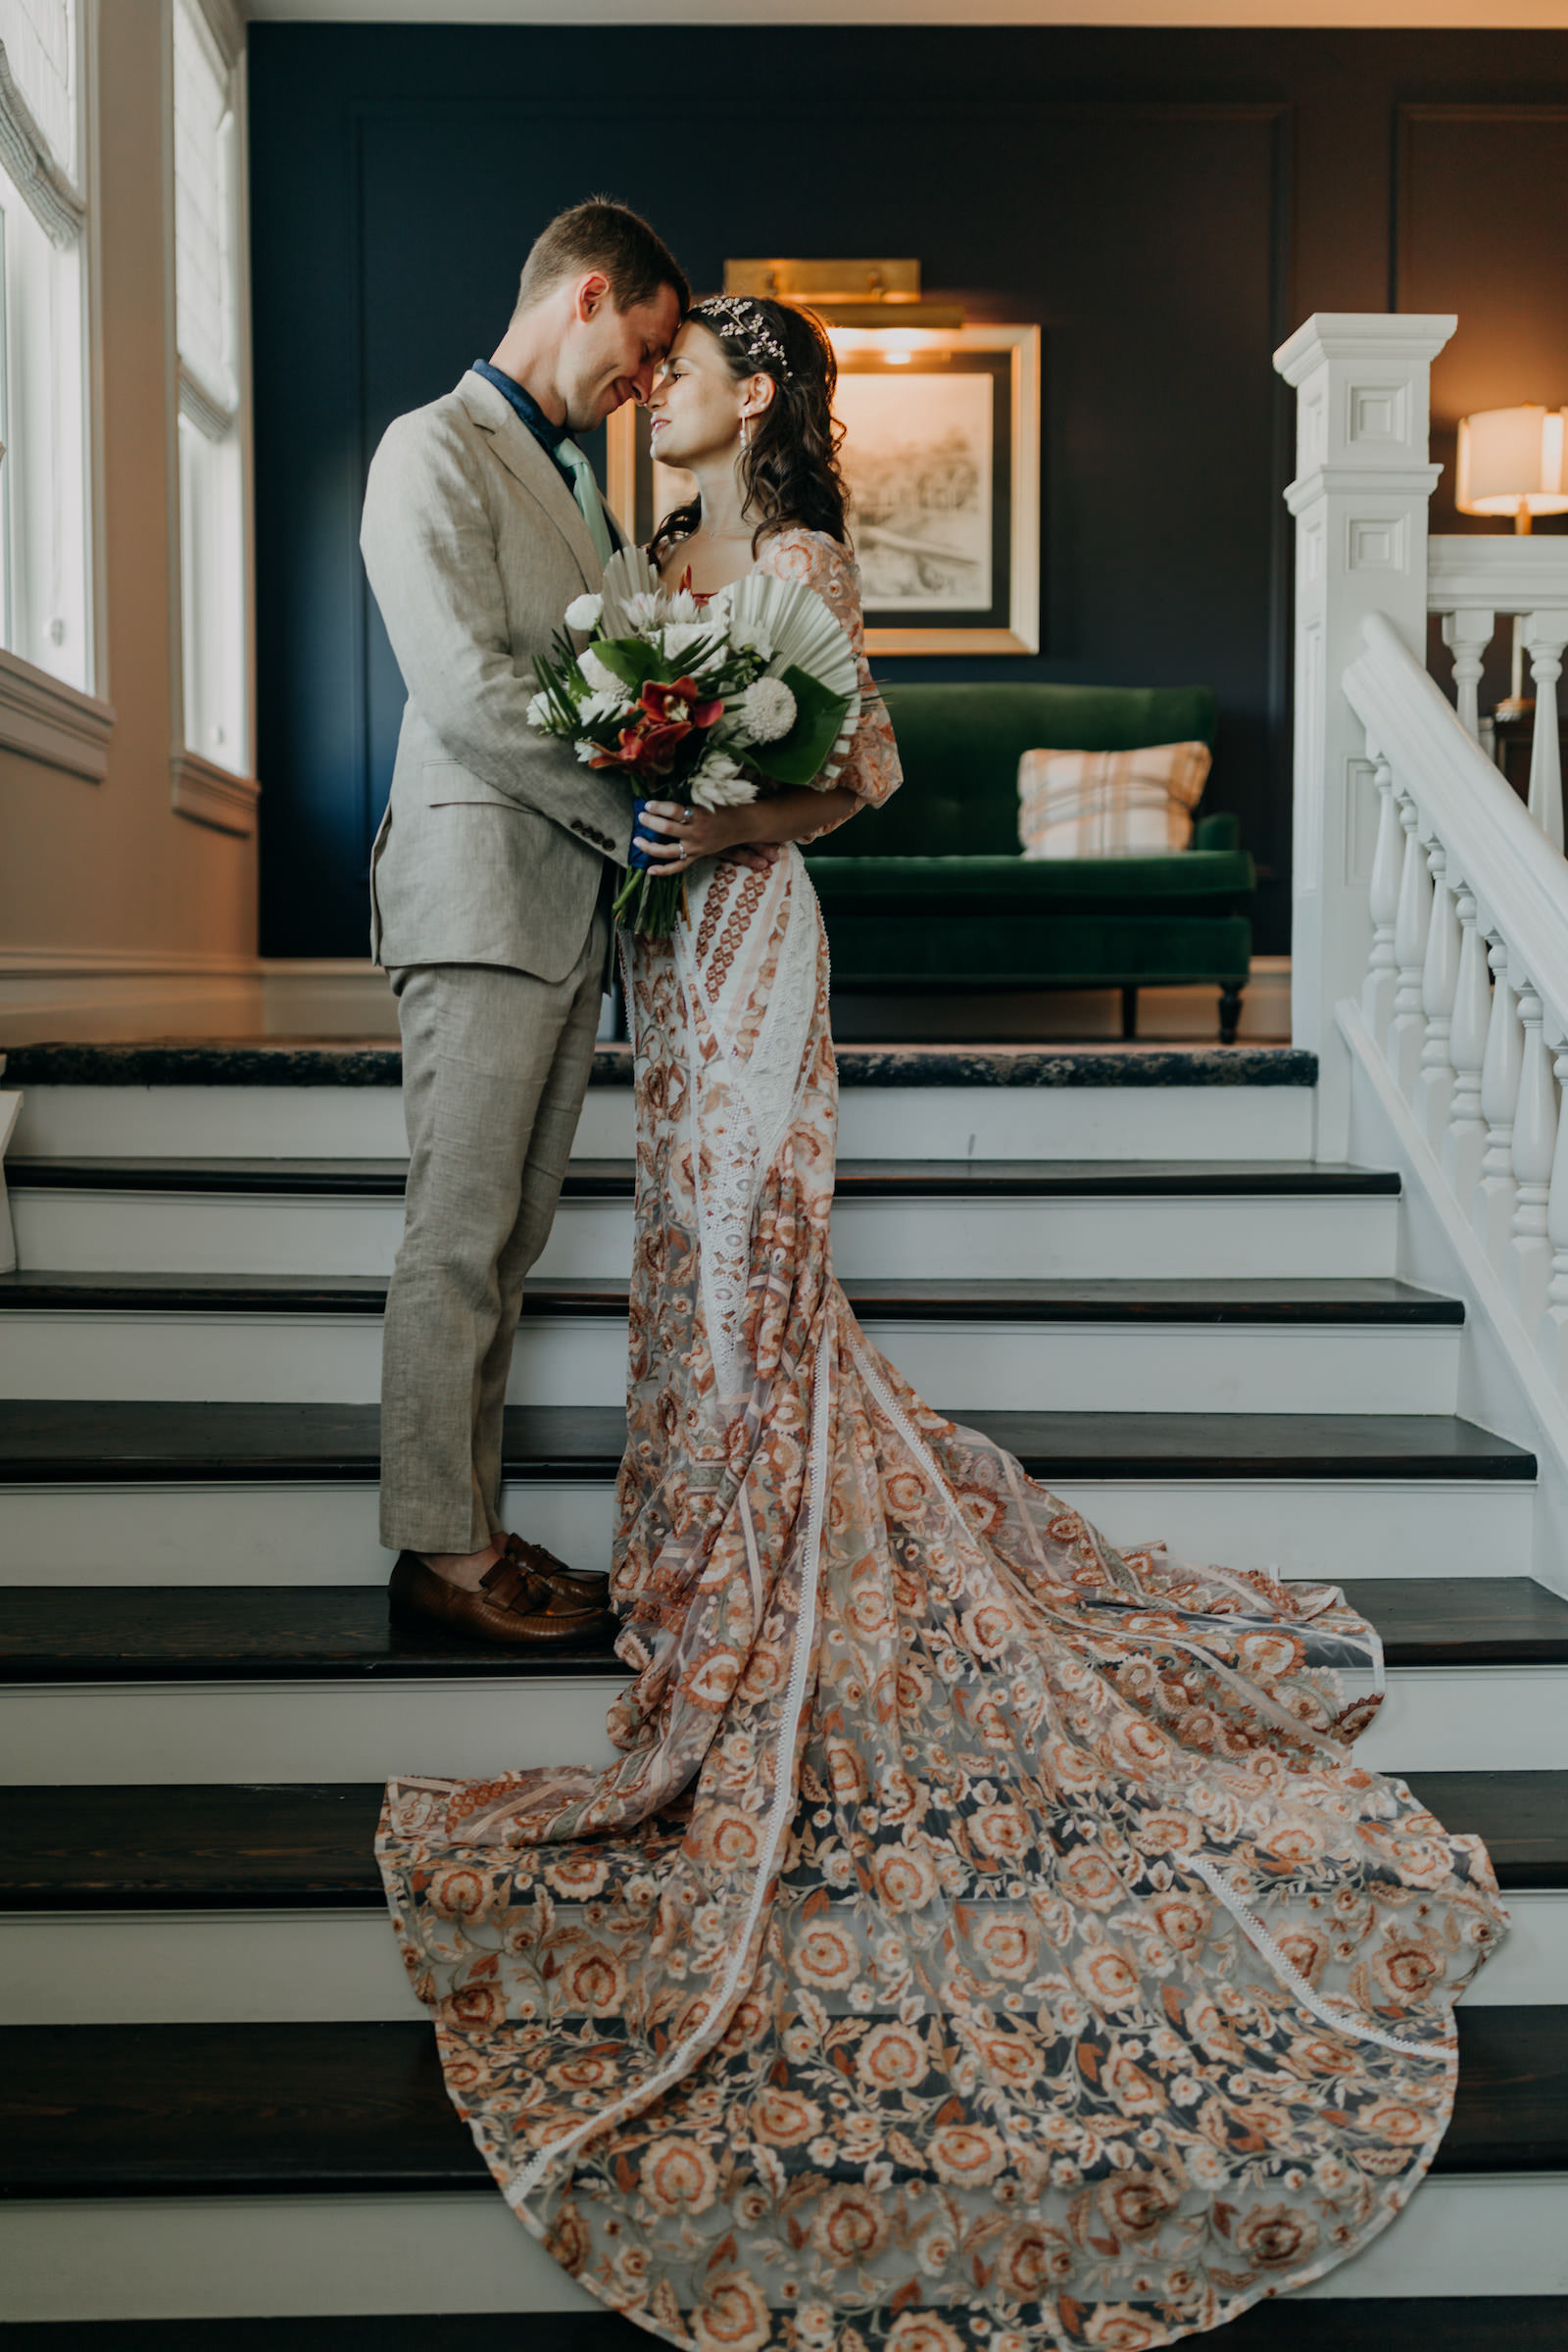 Indoor Bride and Groom Portrait on Staircase   Boho Gold Bronze Embroidered Overlay Wedding Dress Bridal Gown with Illusion Sleeves and Train   Groom in Grey Khaki Linen Suit   Tropical Boho Bridal Bouquet   Amber McWhorter Photography